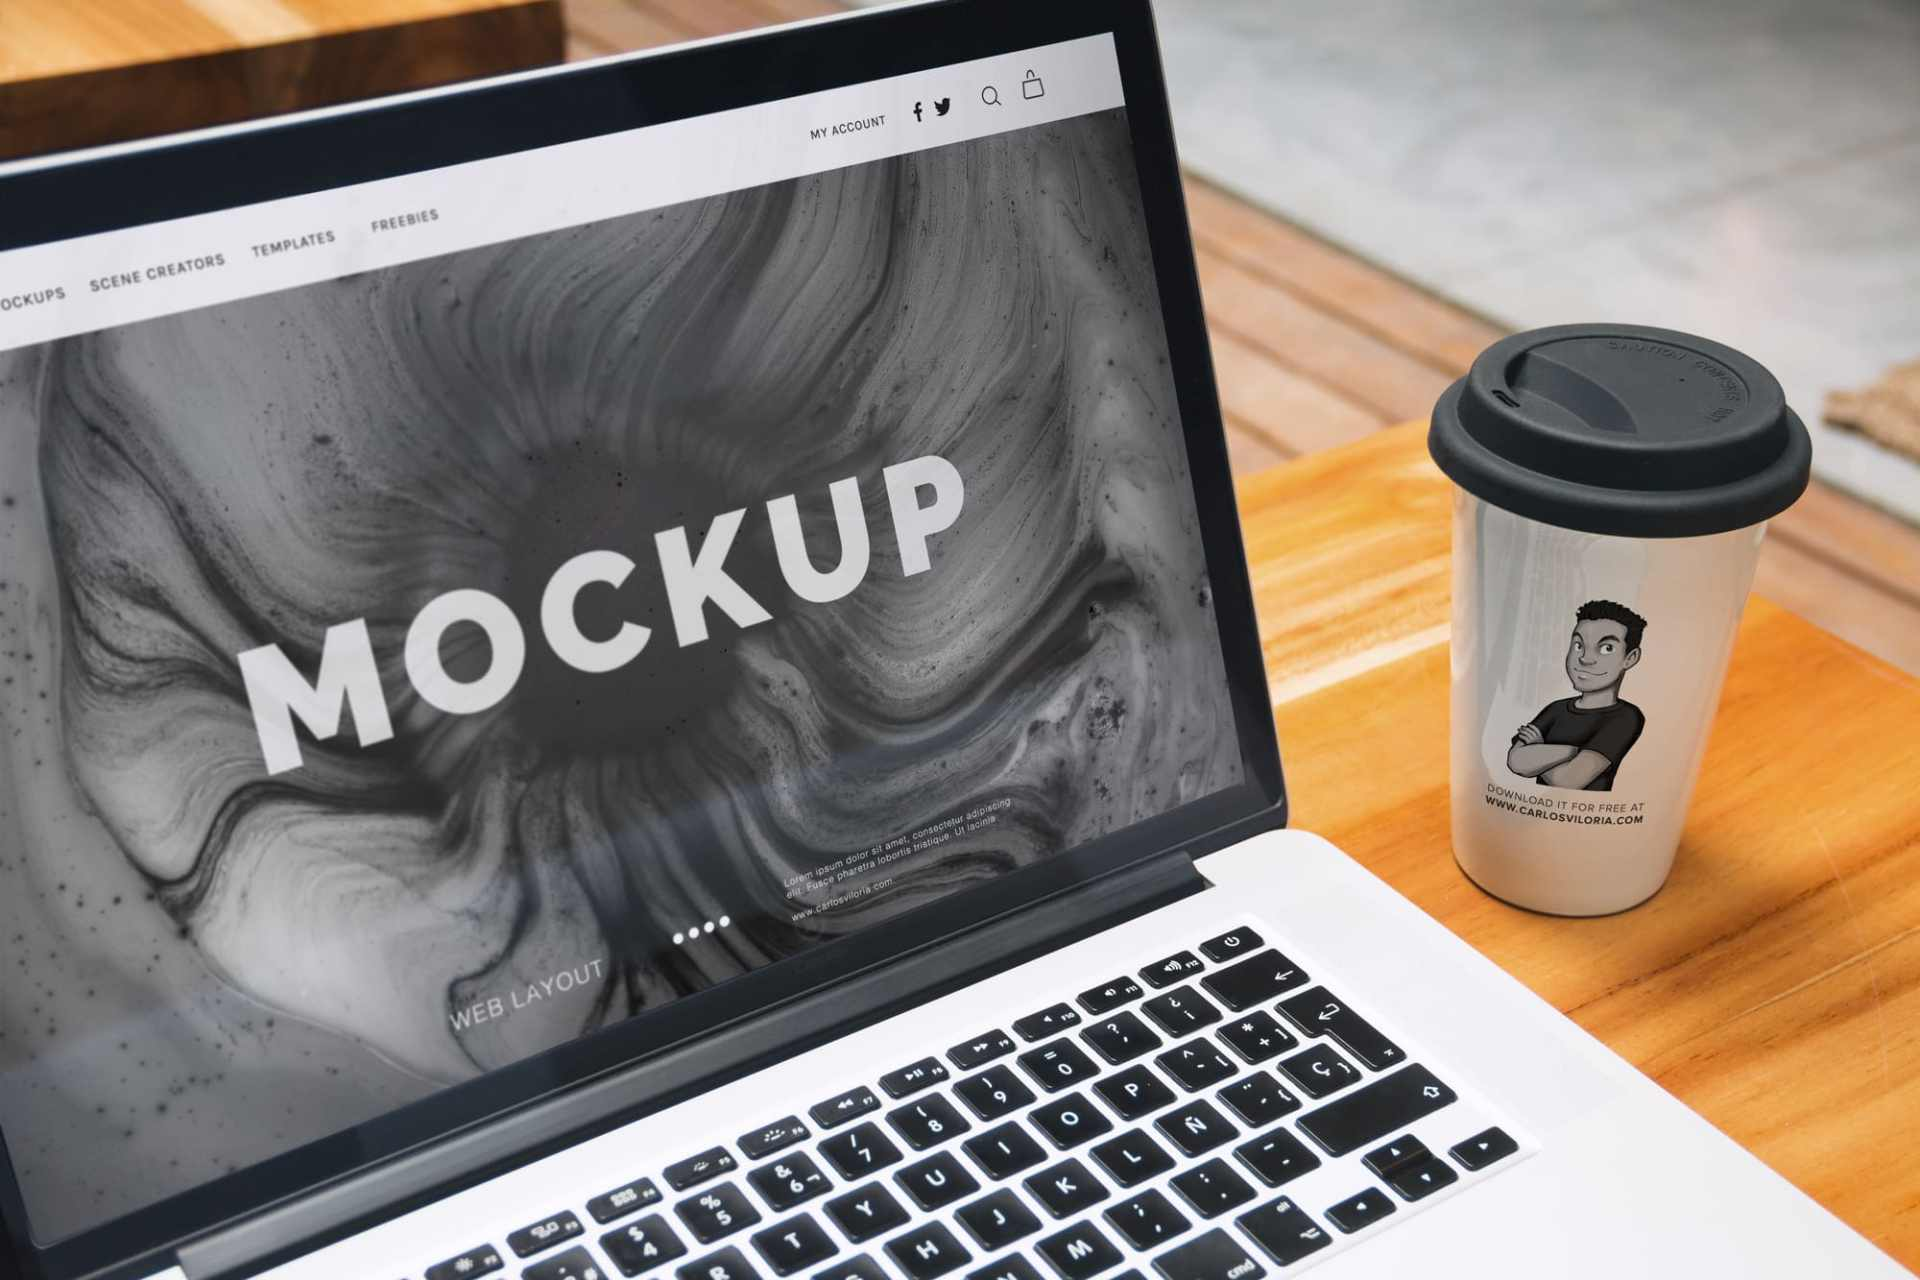 Free Mockup: Macbook Pro and Coffee Cup for Logo